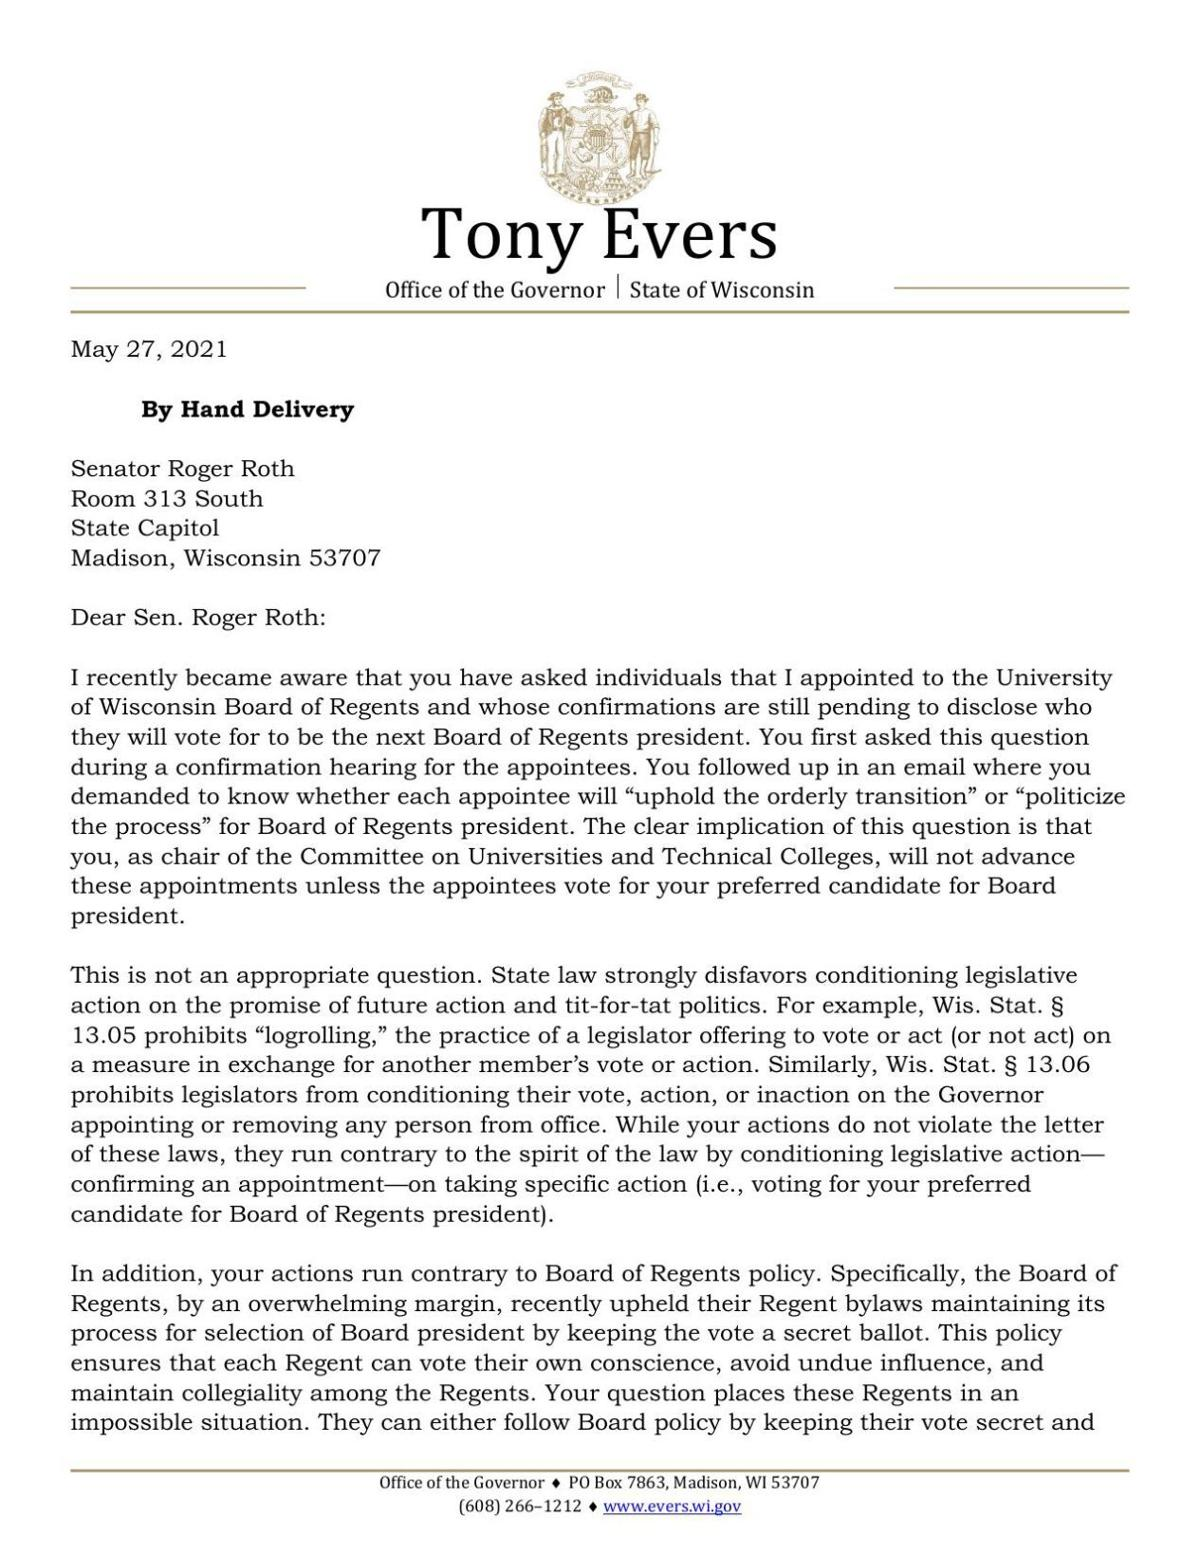 2021_05_27 Evers Letter to Sen Roth.pdf